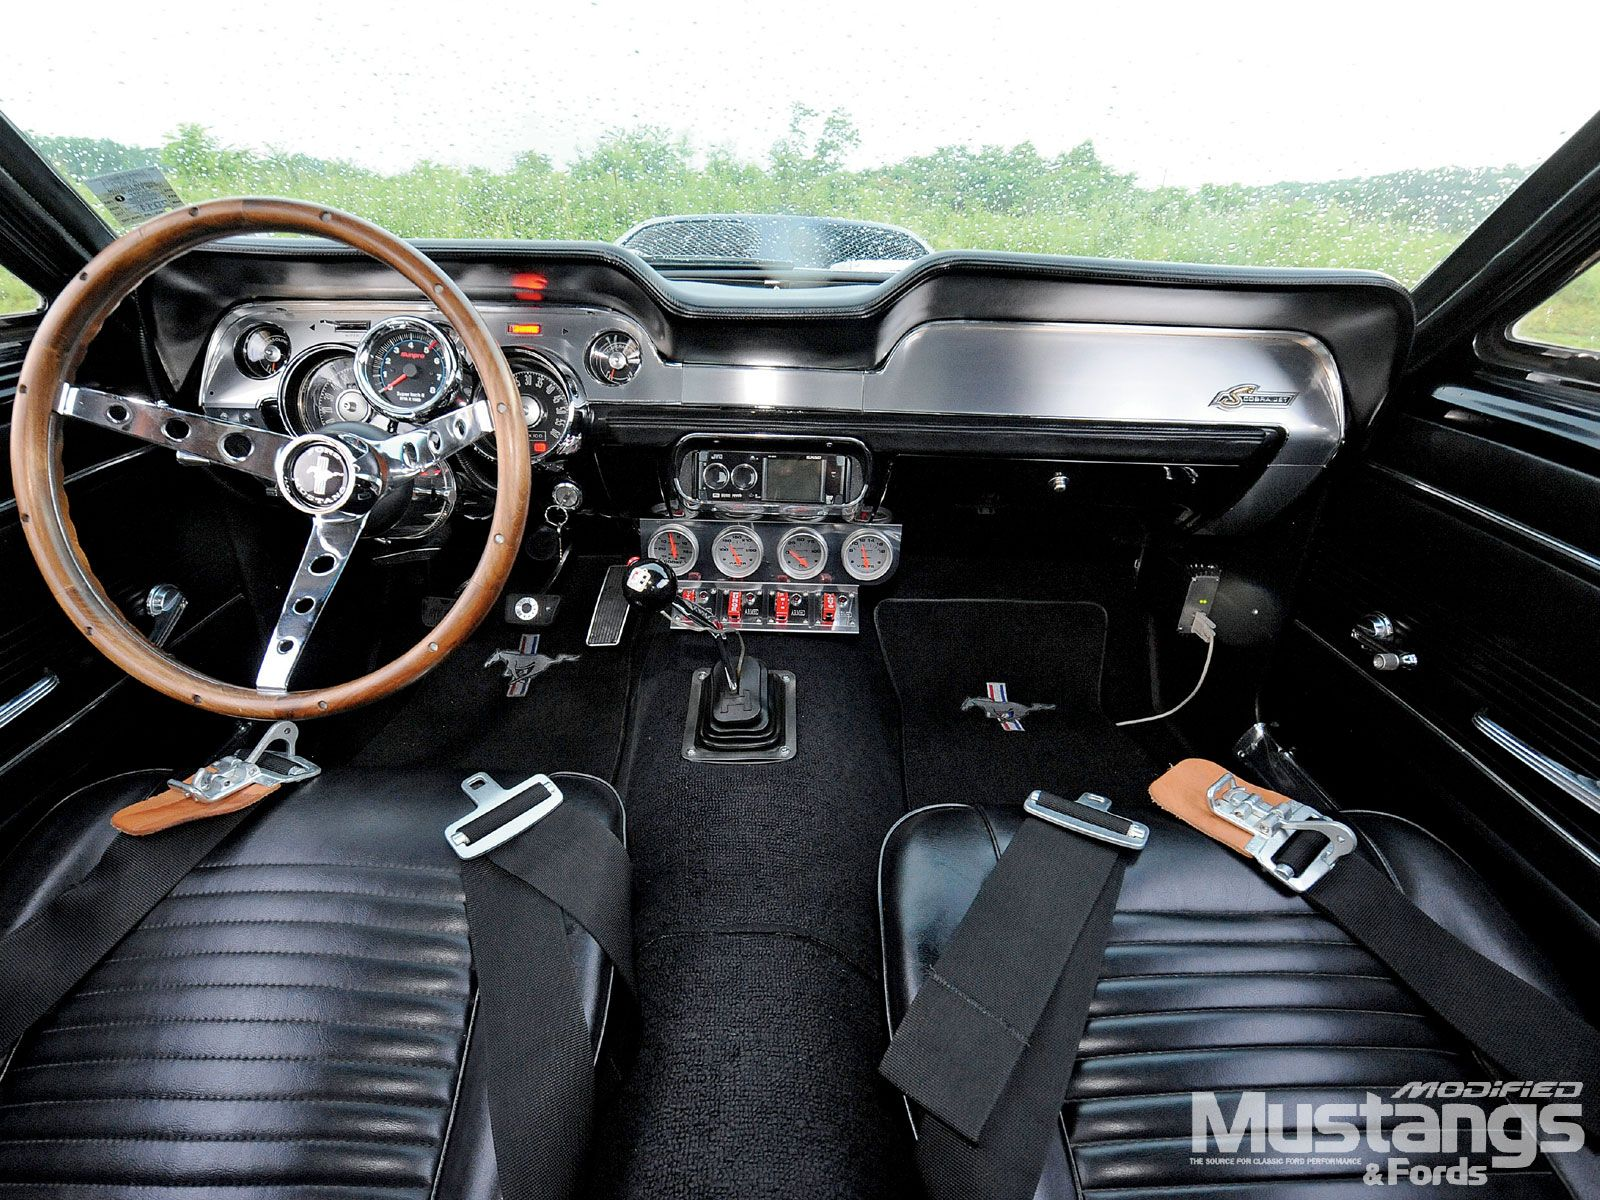 1967 ford mustang interior i cannot stand the standard front seat console and needless gadgetry. Black Bedroom Furniture Sets. Home Design Ideas